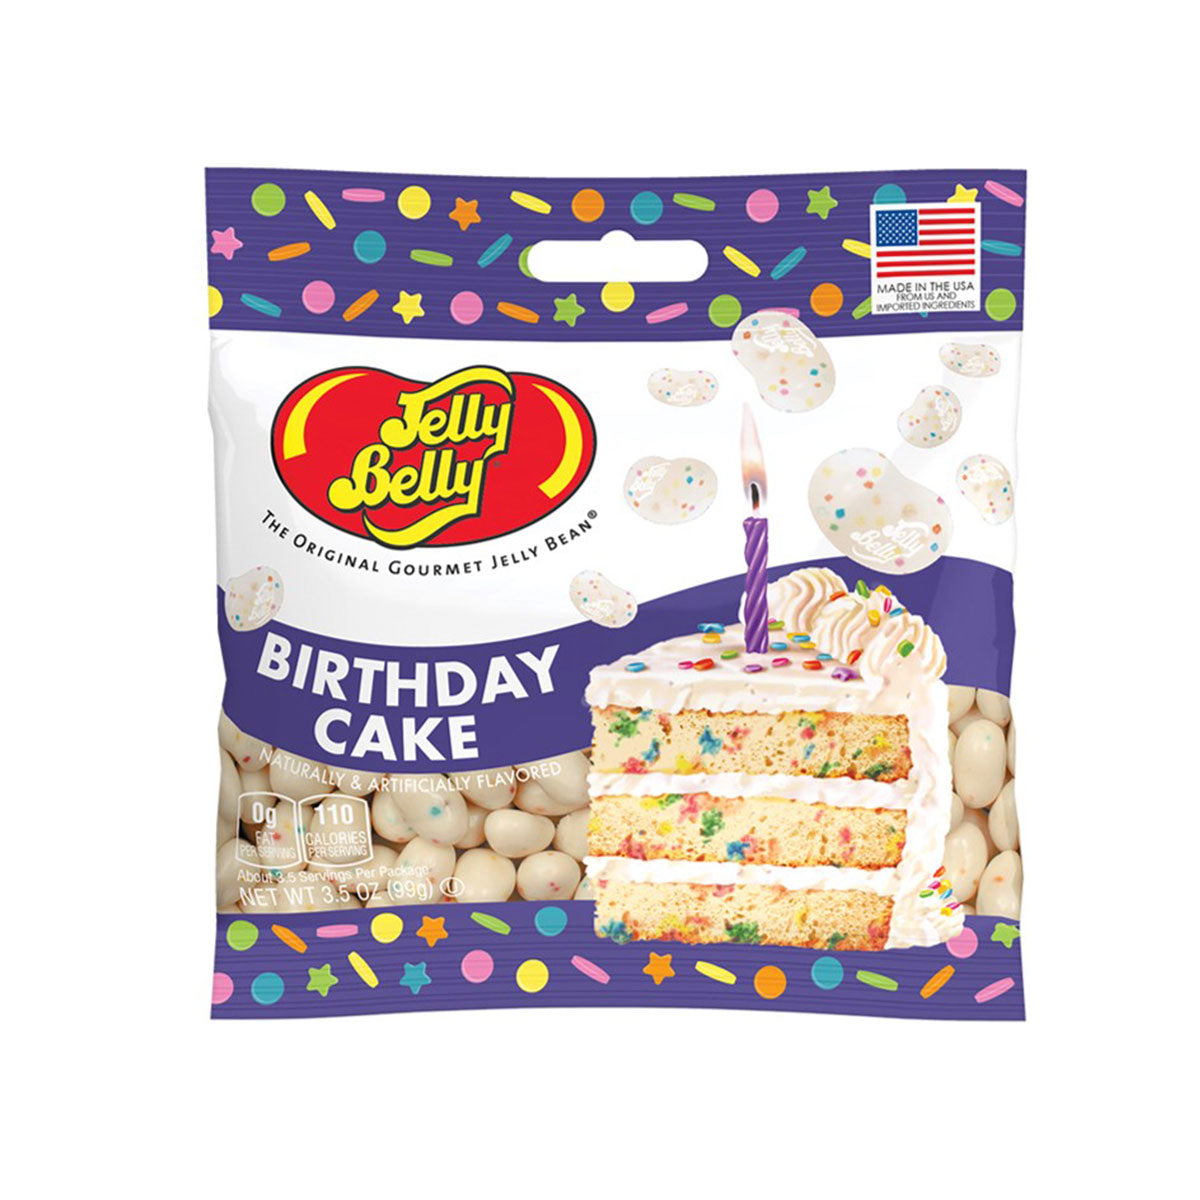 Jelly Belly Birthday Cake Jelly Beans, 3.5oz